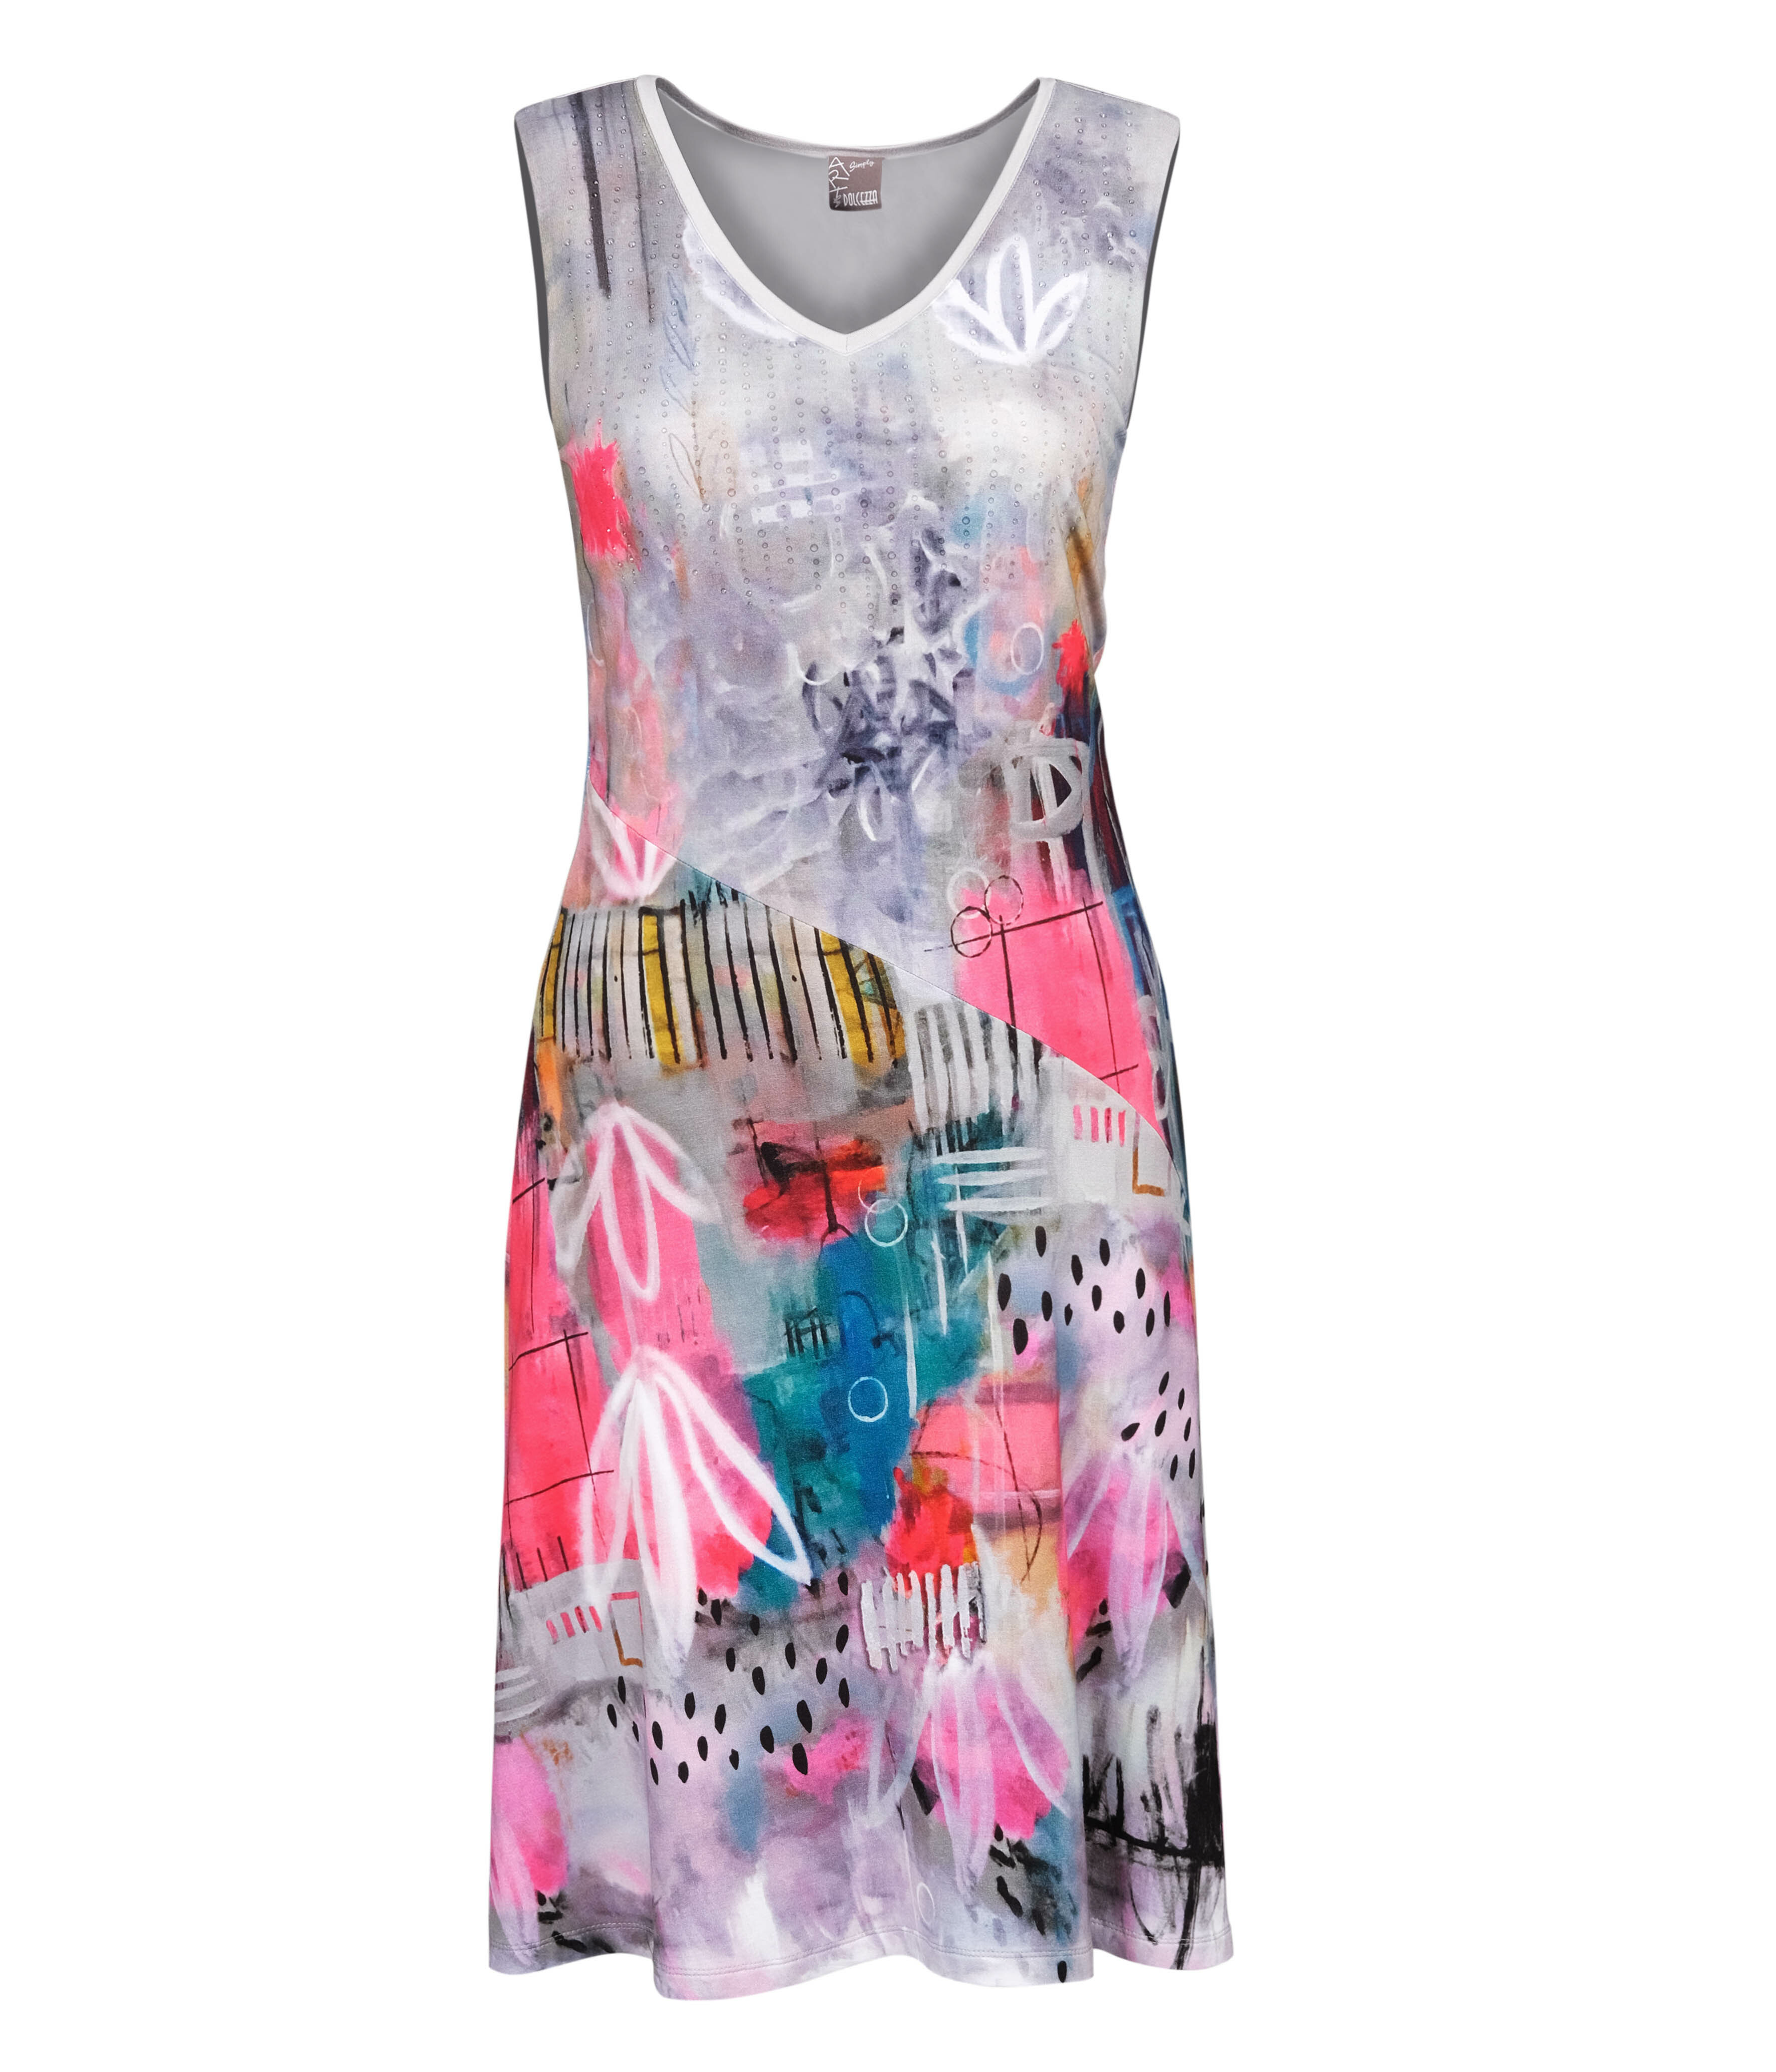 Simply Art Dolcezza: Receive The Best Things In Life Abstract Art Midi Dress (1 Left!)